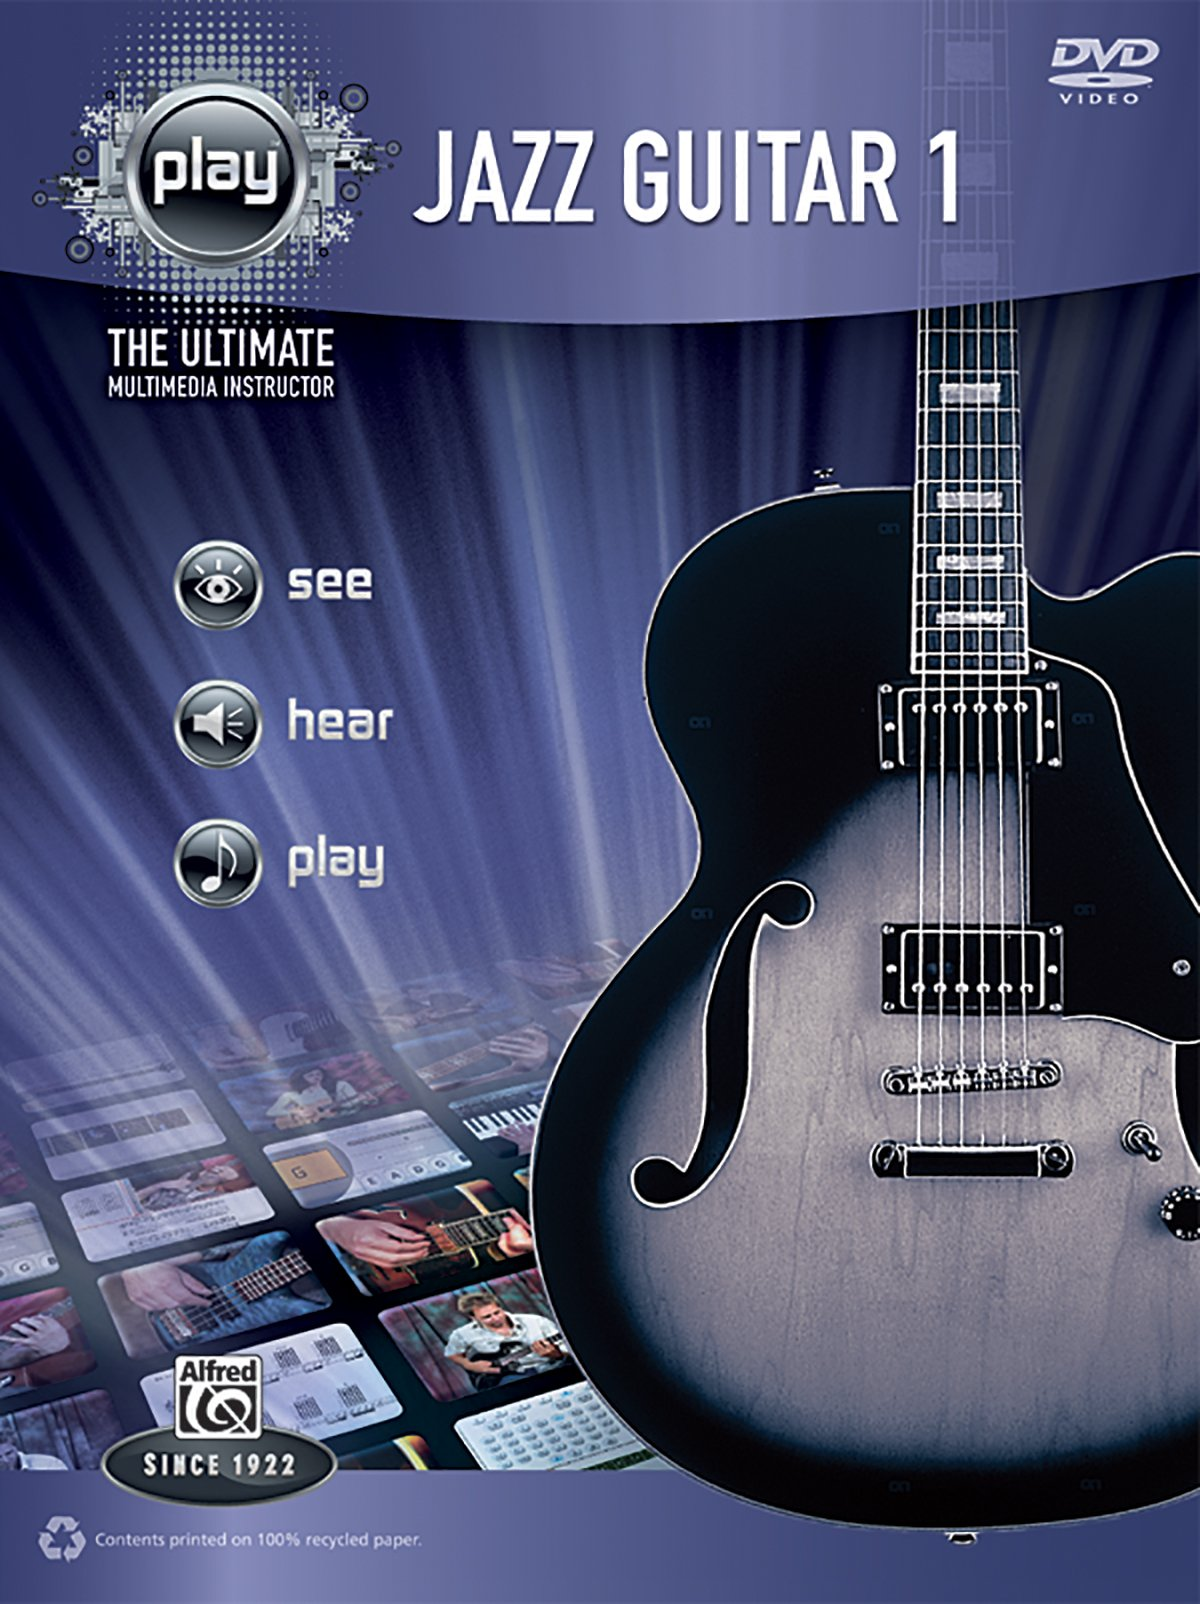 Alfred's PLAY Jazz Guitar 1: The Ultimate Multimedia Instructor (Book & DVD) (Alfred's Play Series) ebook